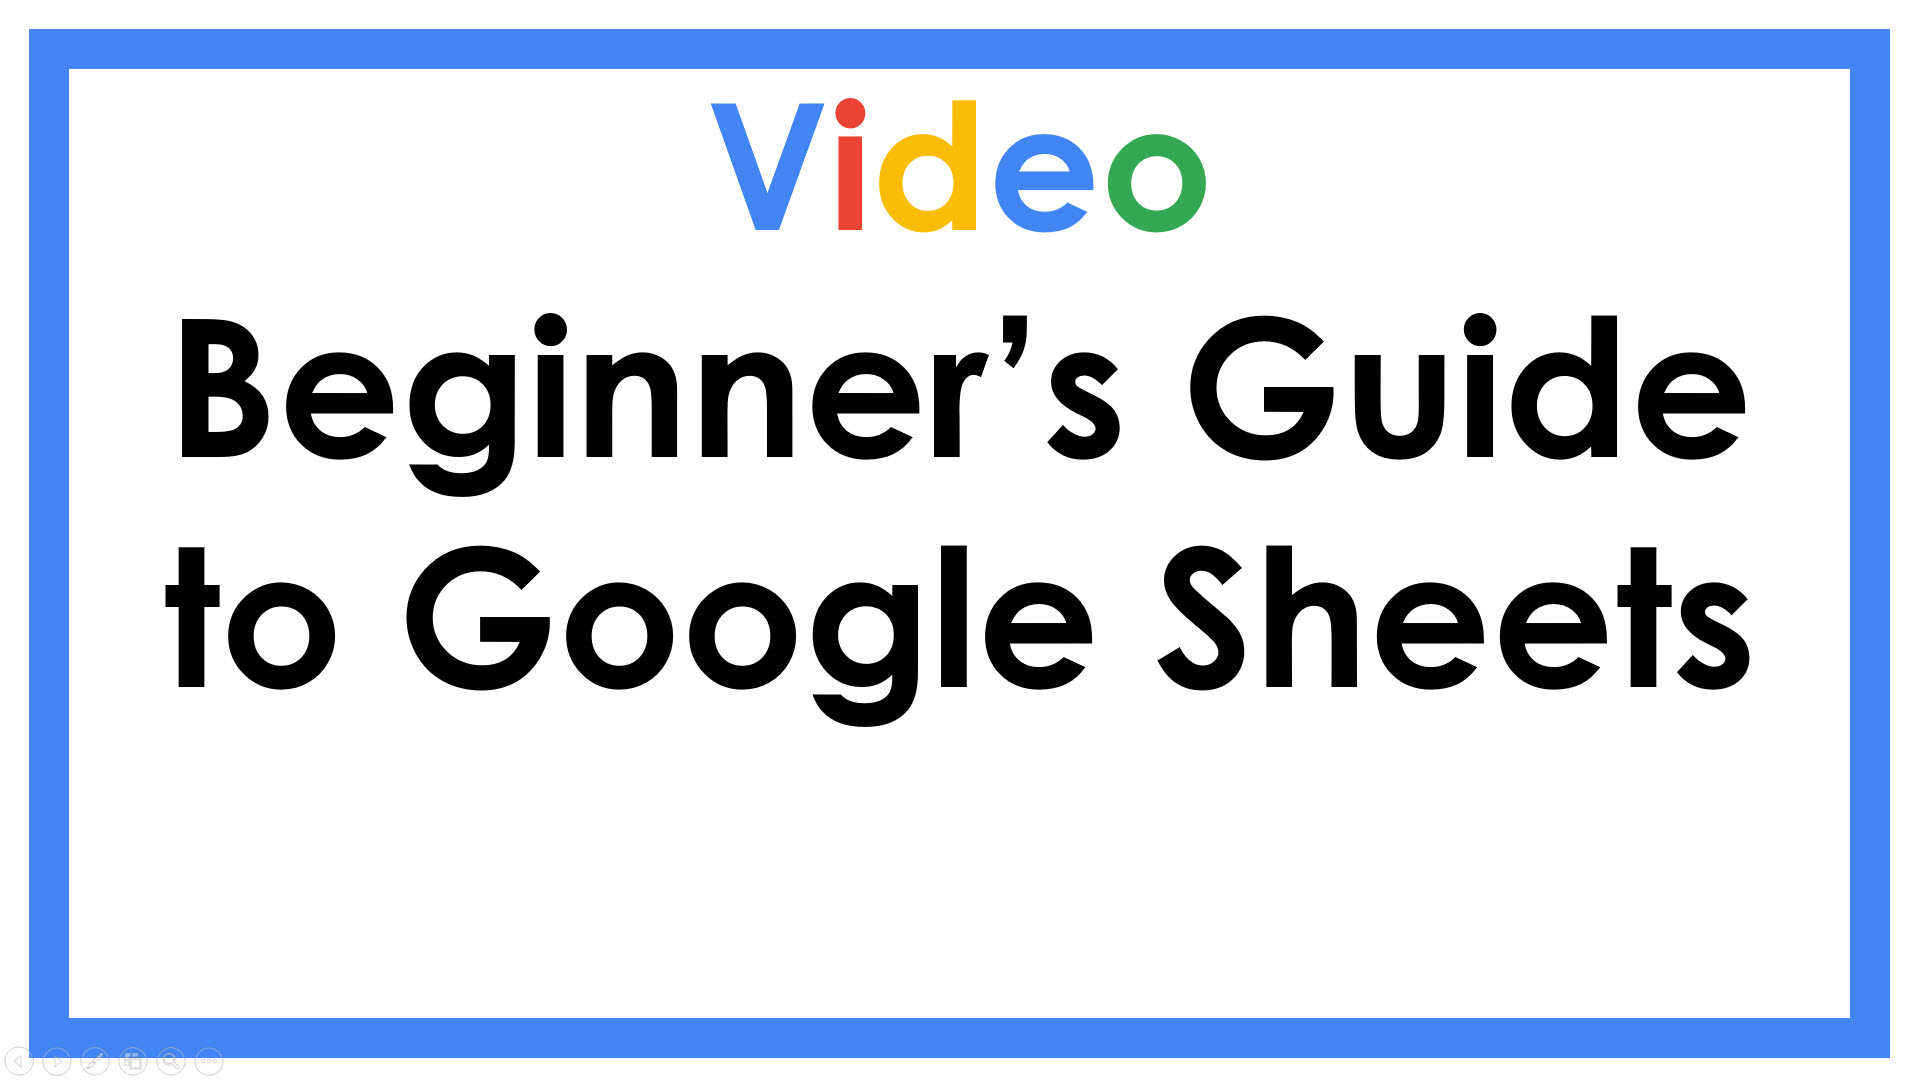 Beginner's Guide to Google Sheets